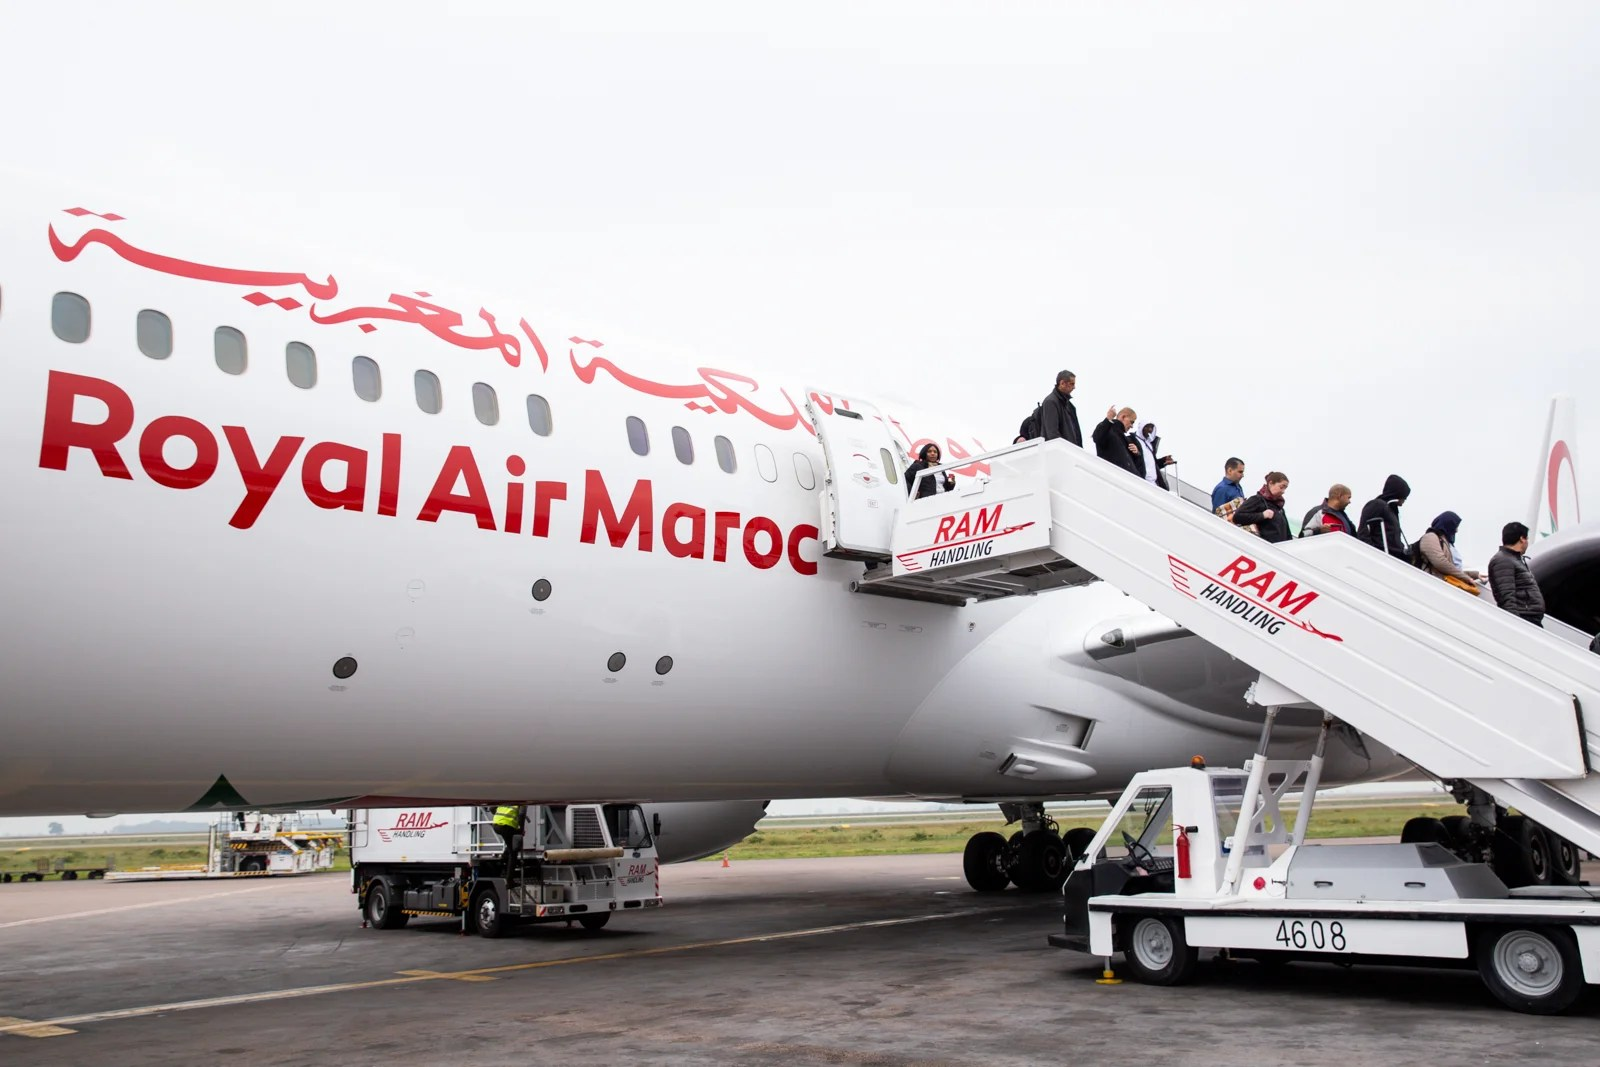 Royal Air Maroc is officially Oneworld's newest member